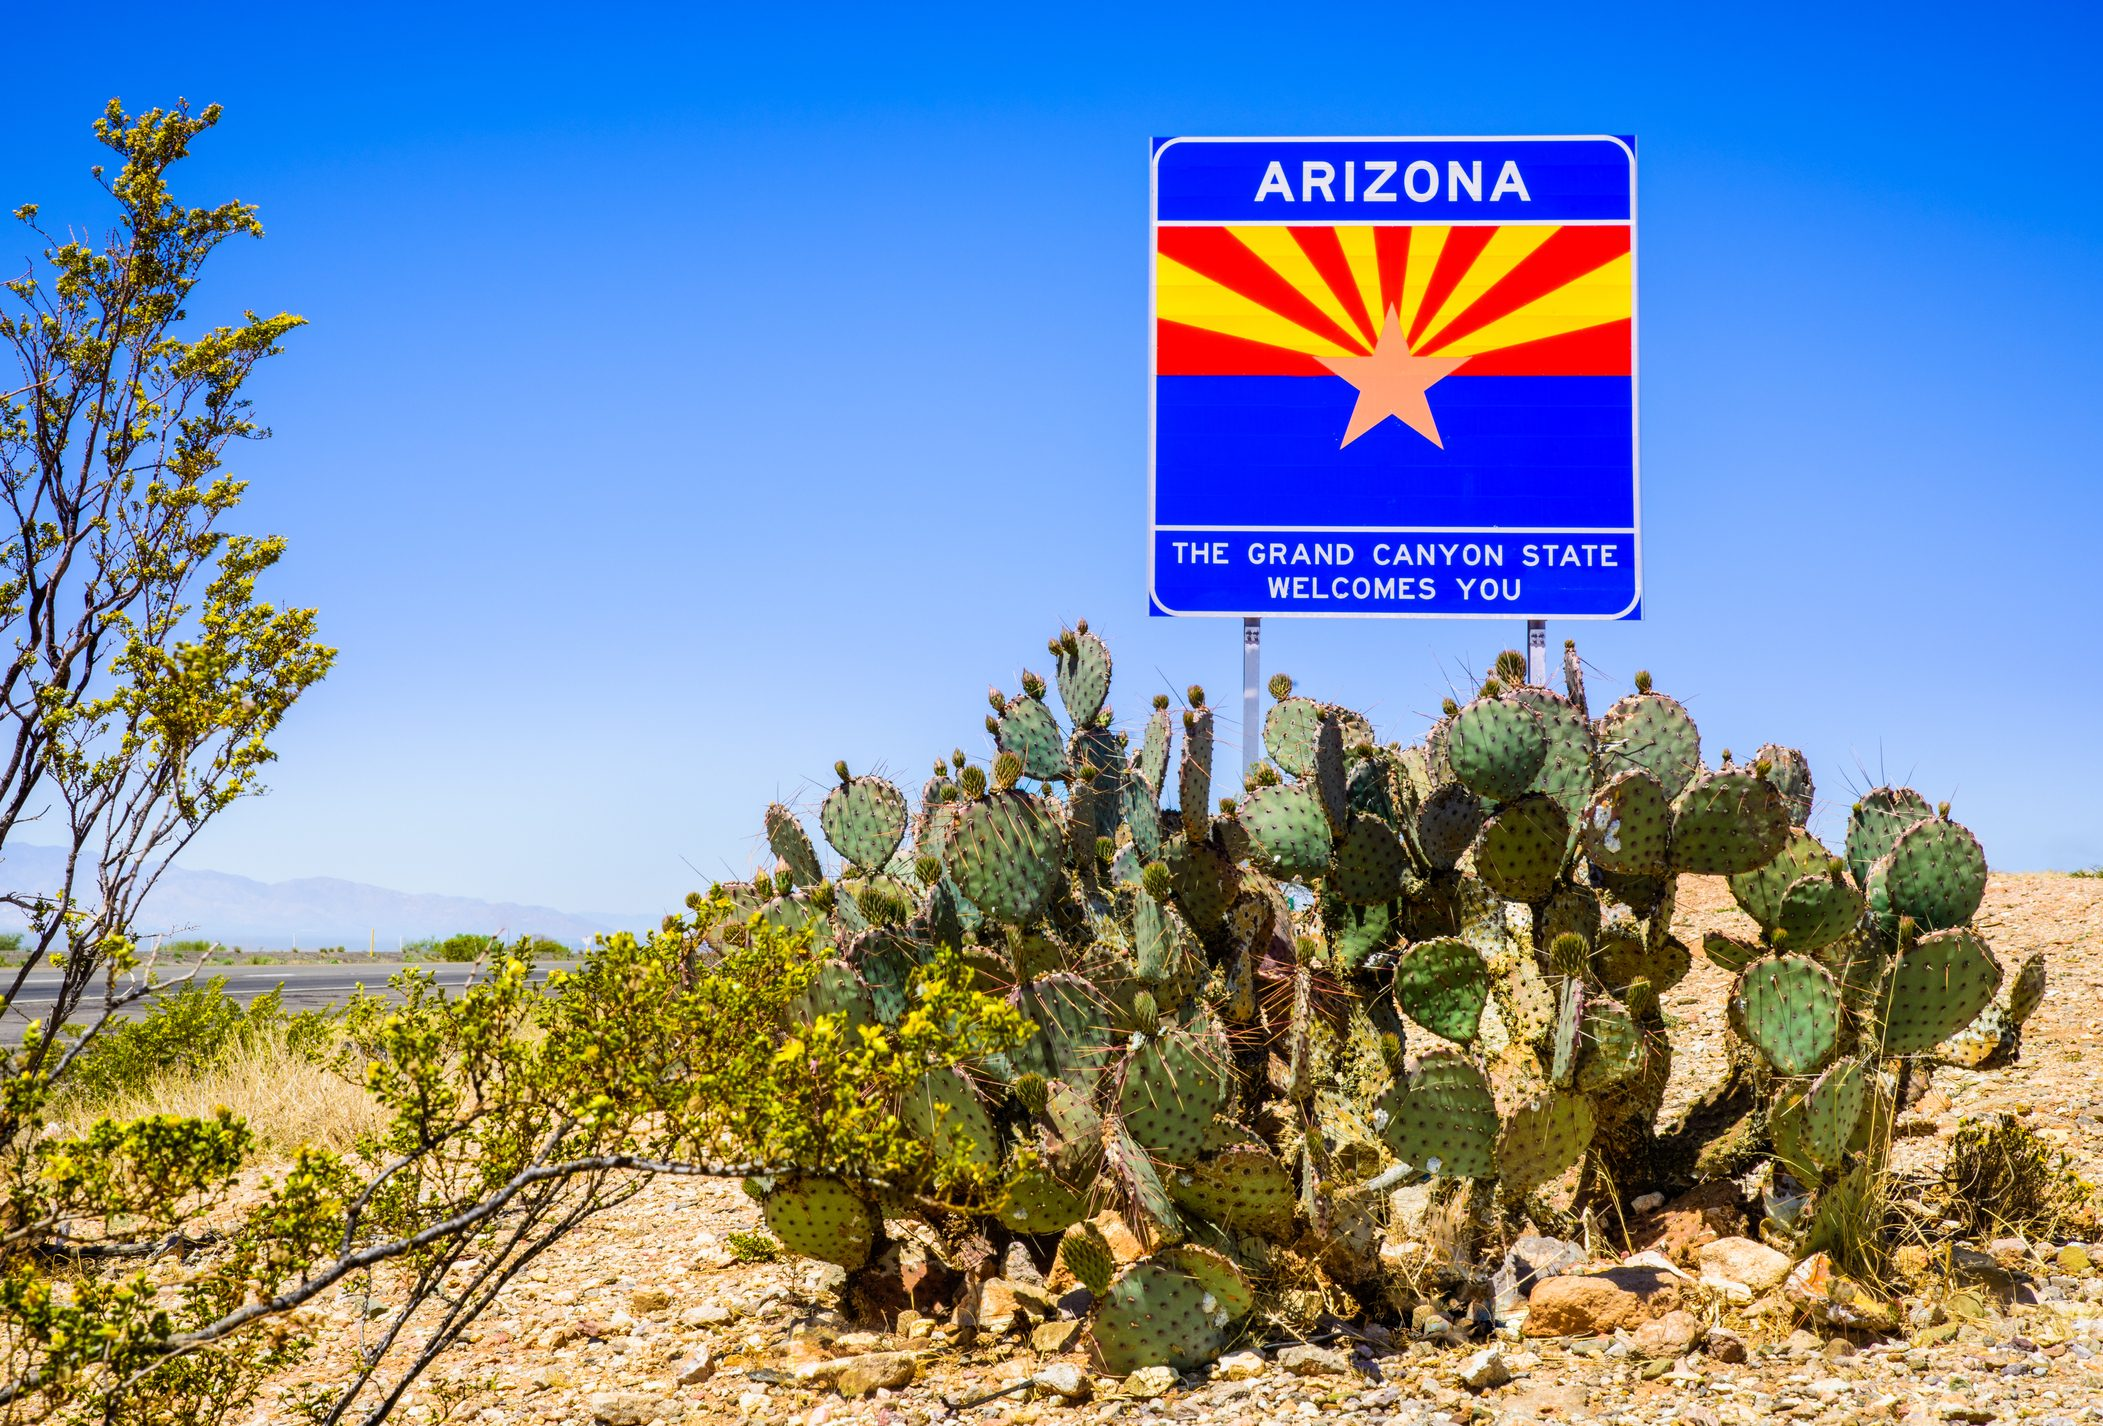 Arizona State highway welcome sign with cactus, mountains, and sky